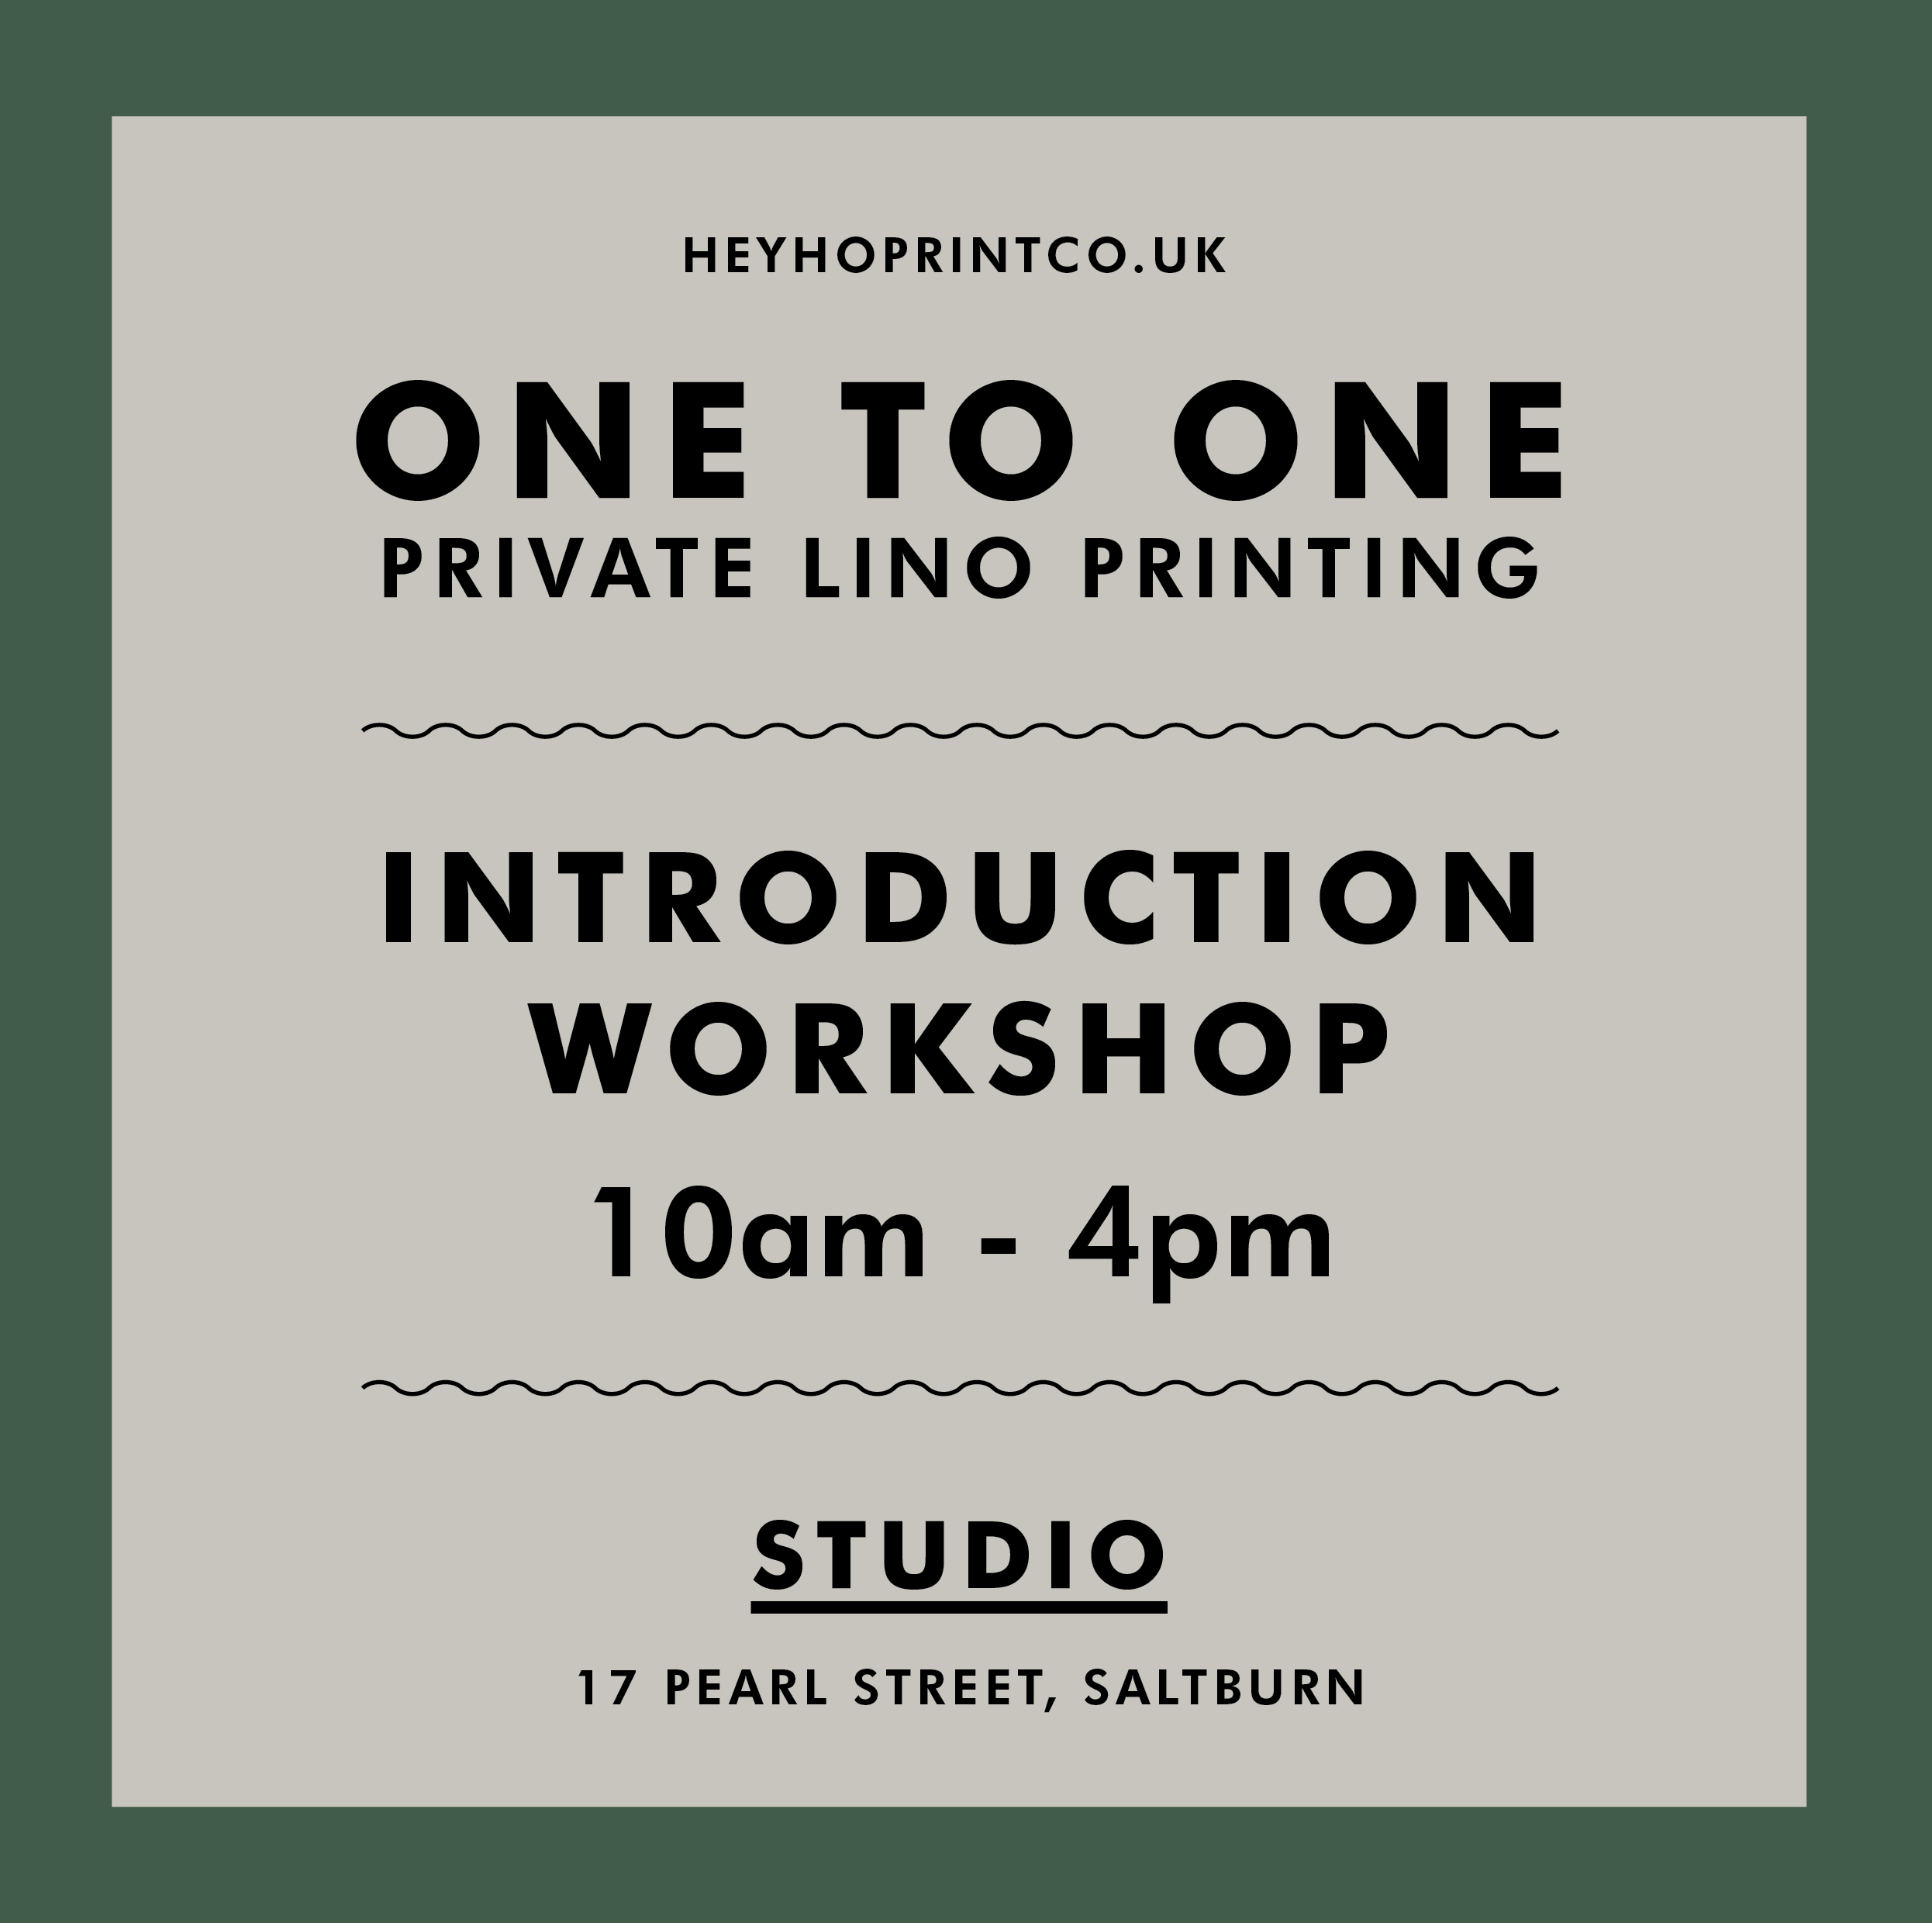 One to One Private Lino Printing Workshop